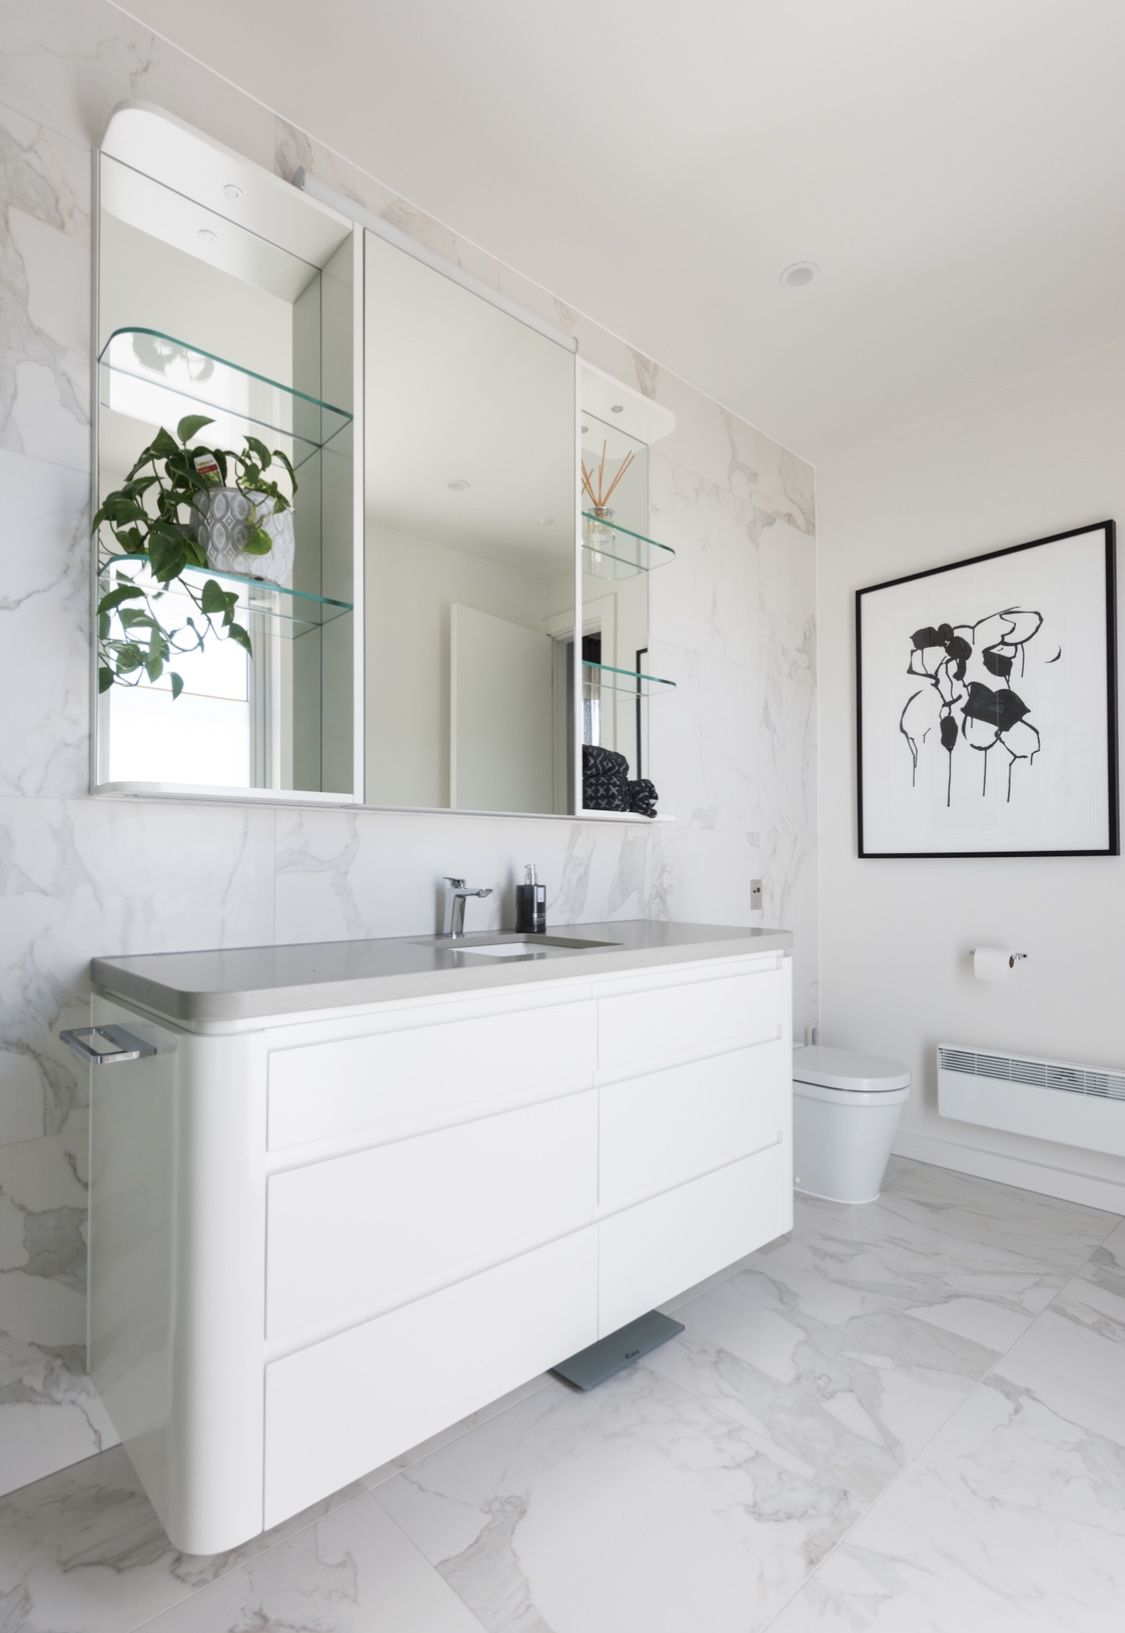 Love the marble tiles on the wall. A white bathroom is